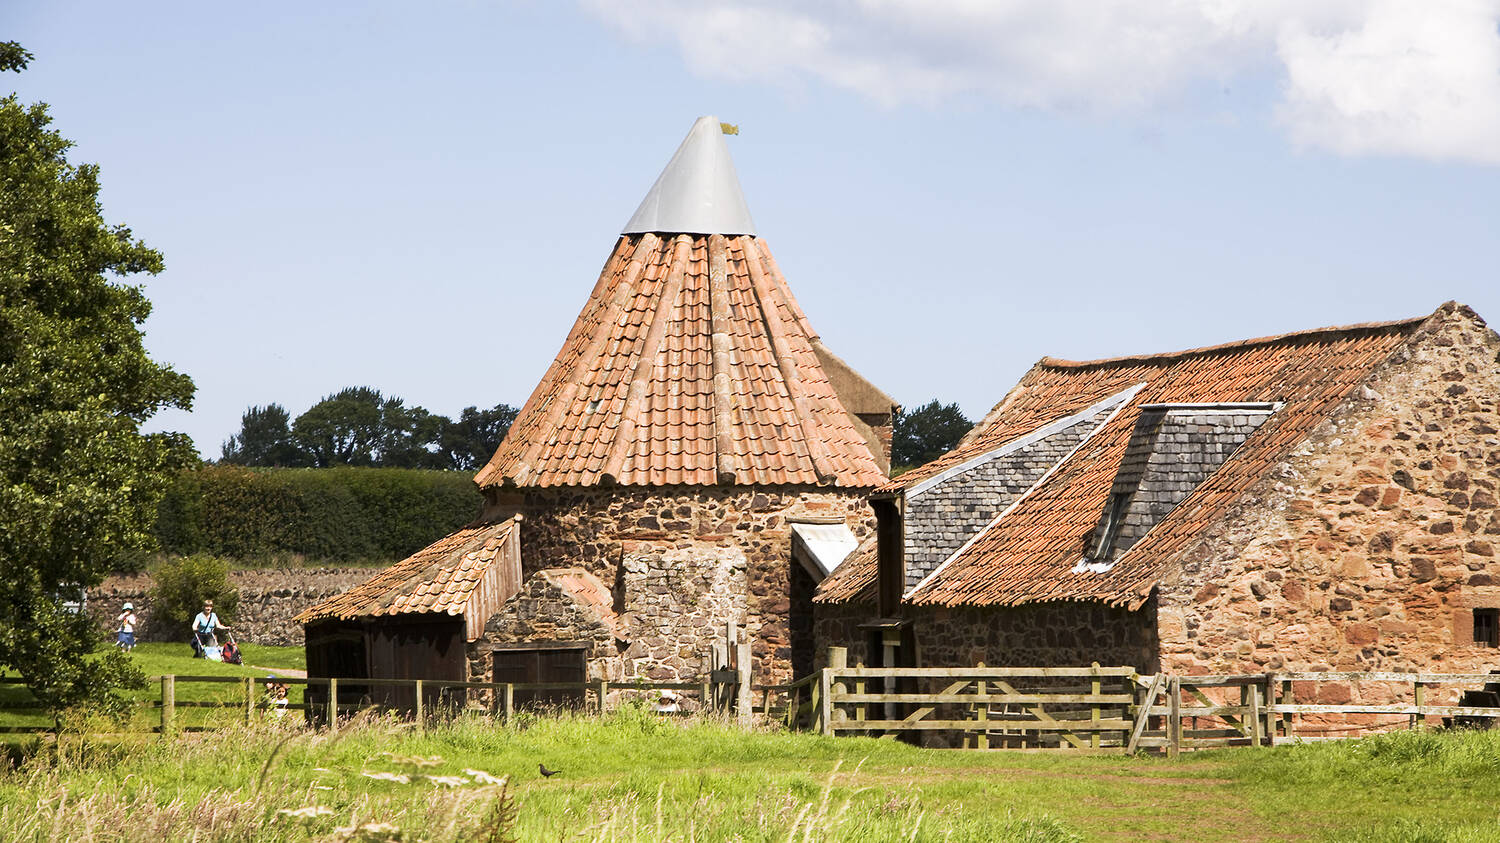 Preston Mill is surrounded by grass meadows. It has orange stone walls with a conical roof, that leans slightly to the side.